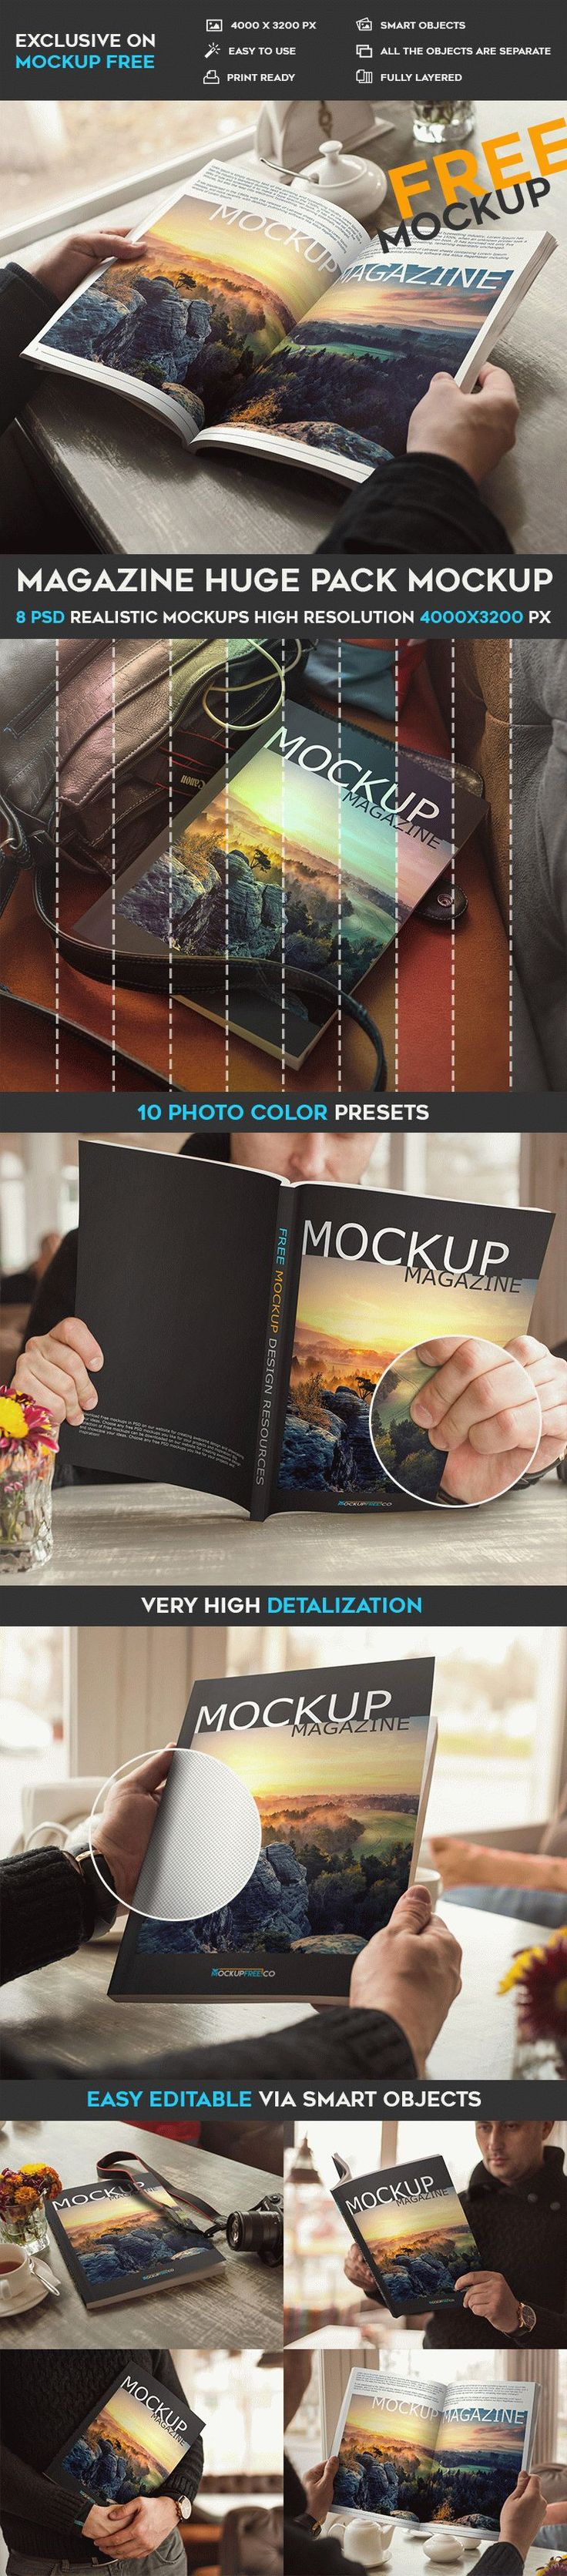 Magazine Huge Pack – 8 Free PSD Mockups | Free PSD Templates